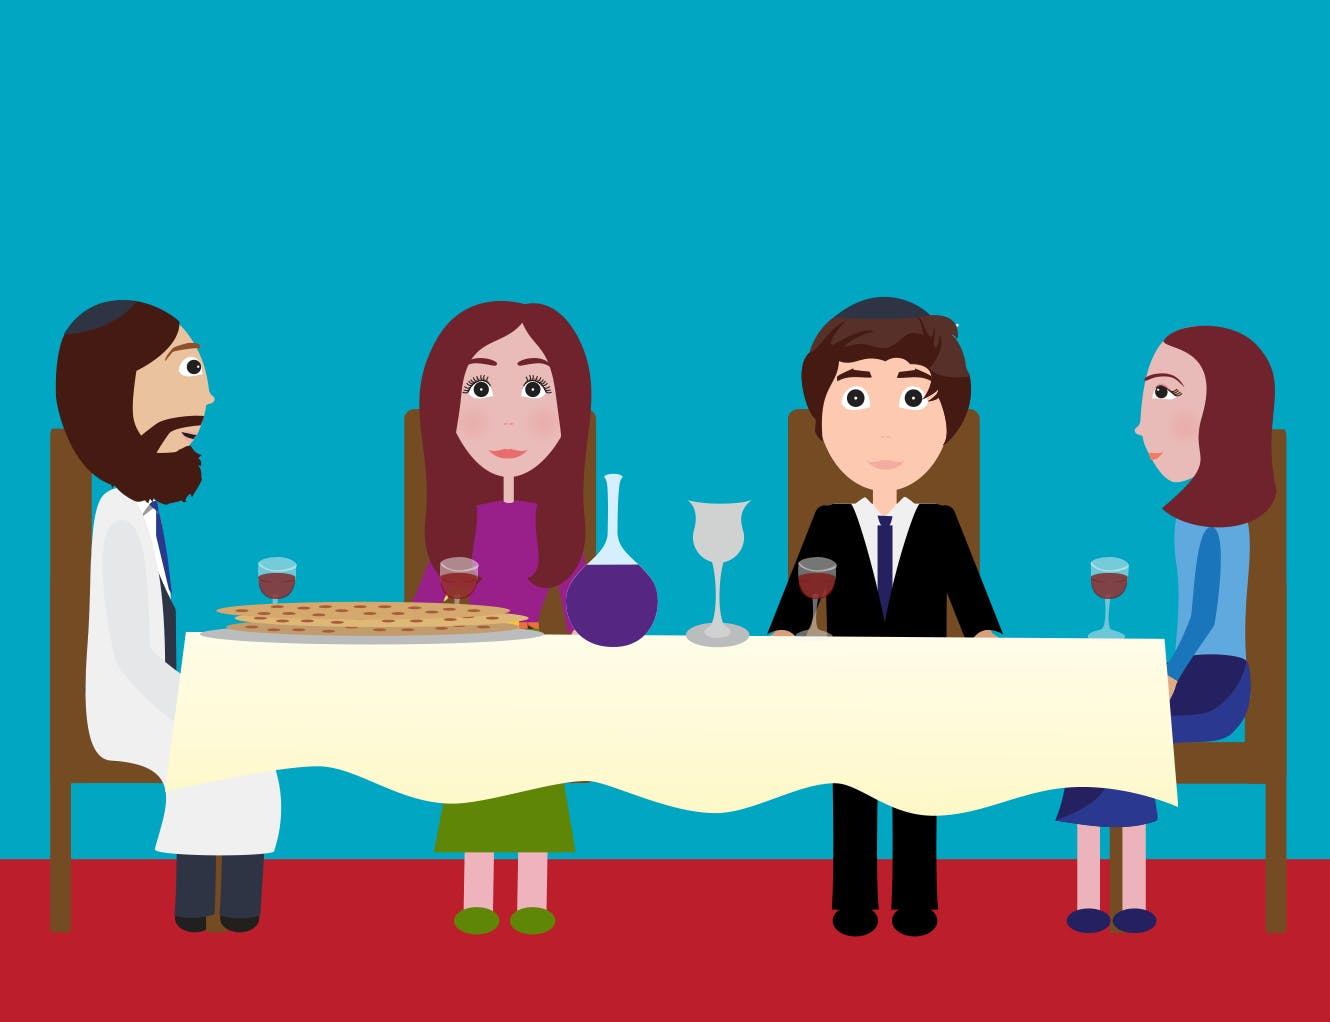 Seder meal meaning